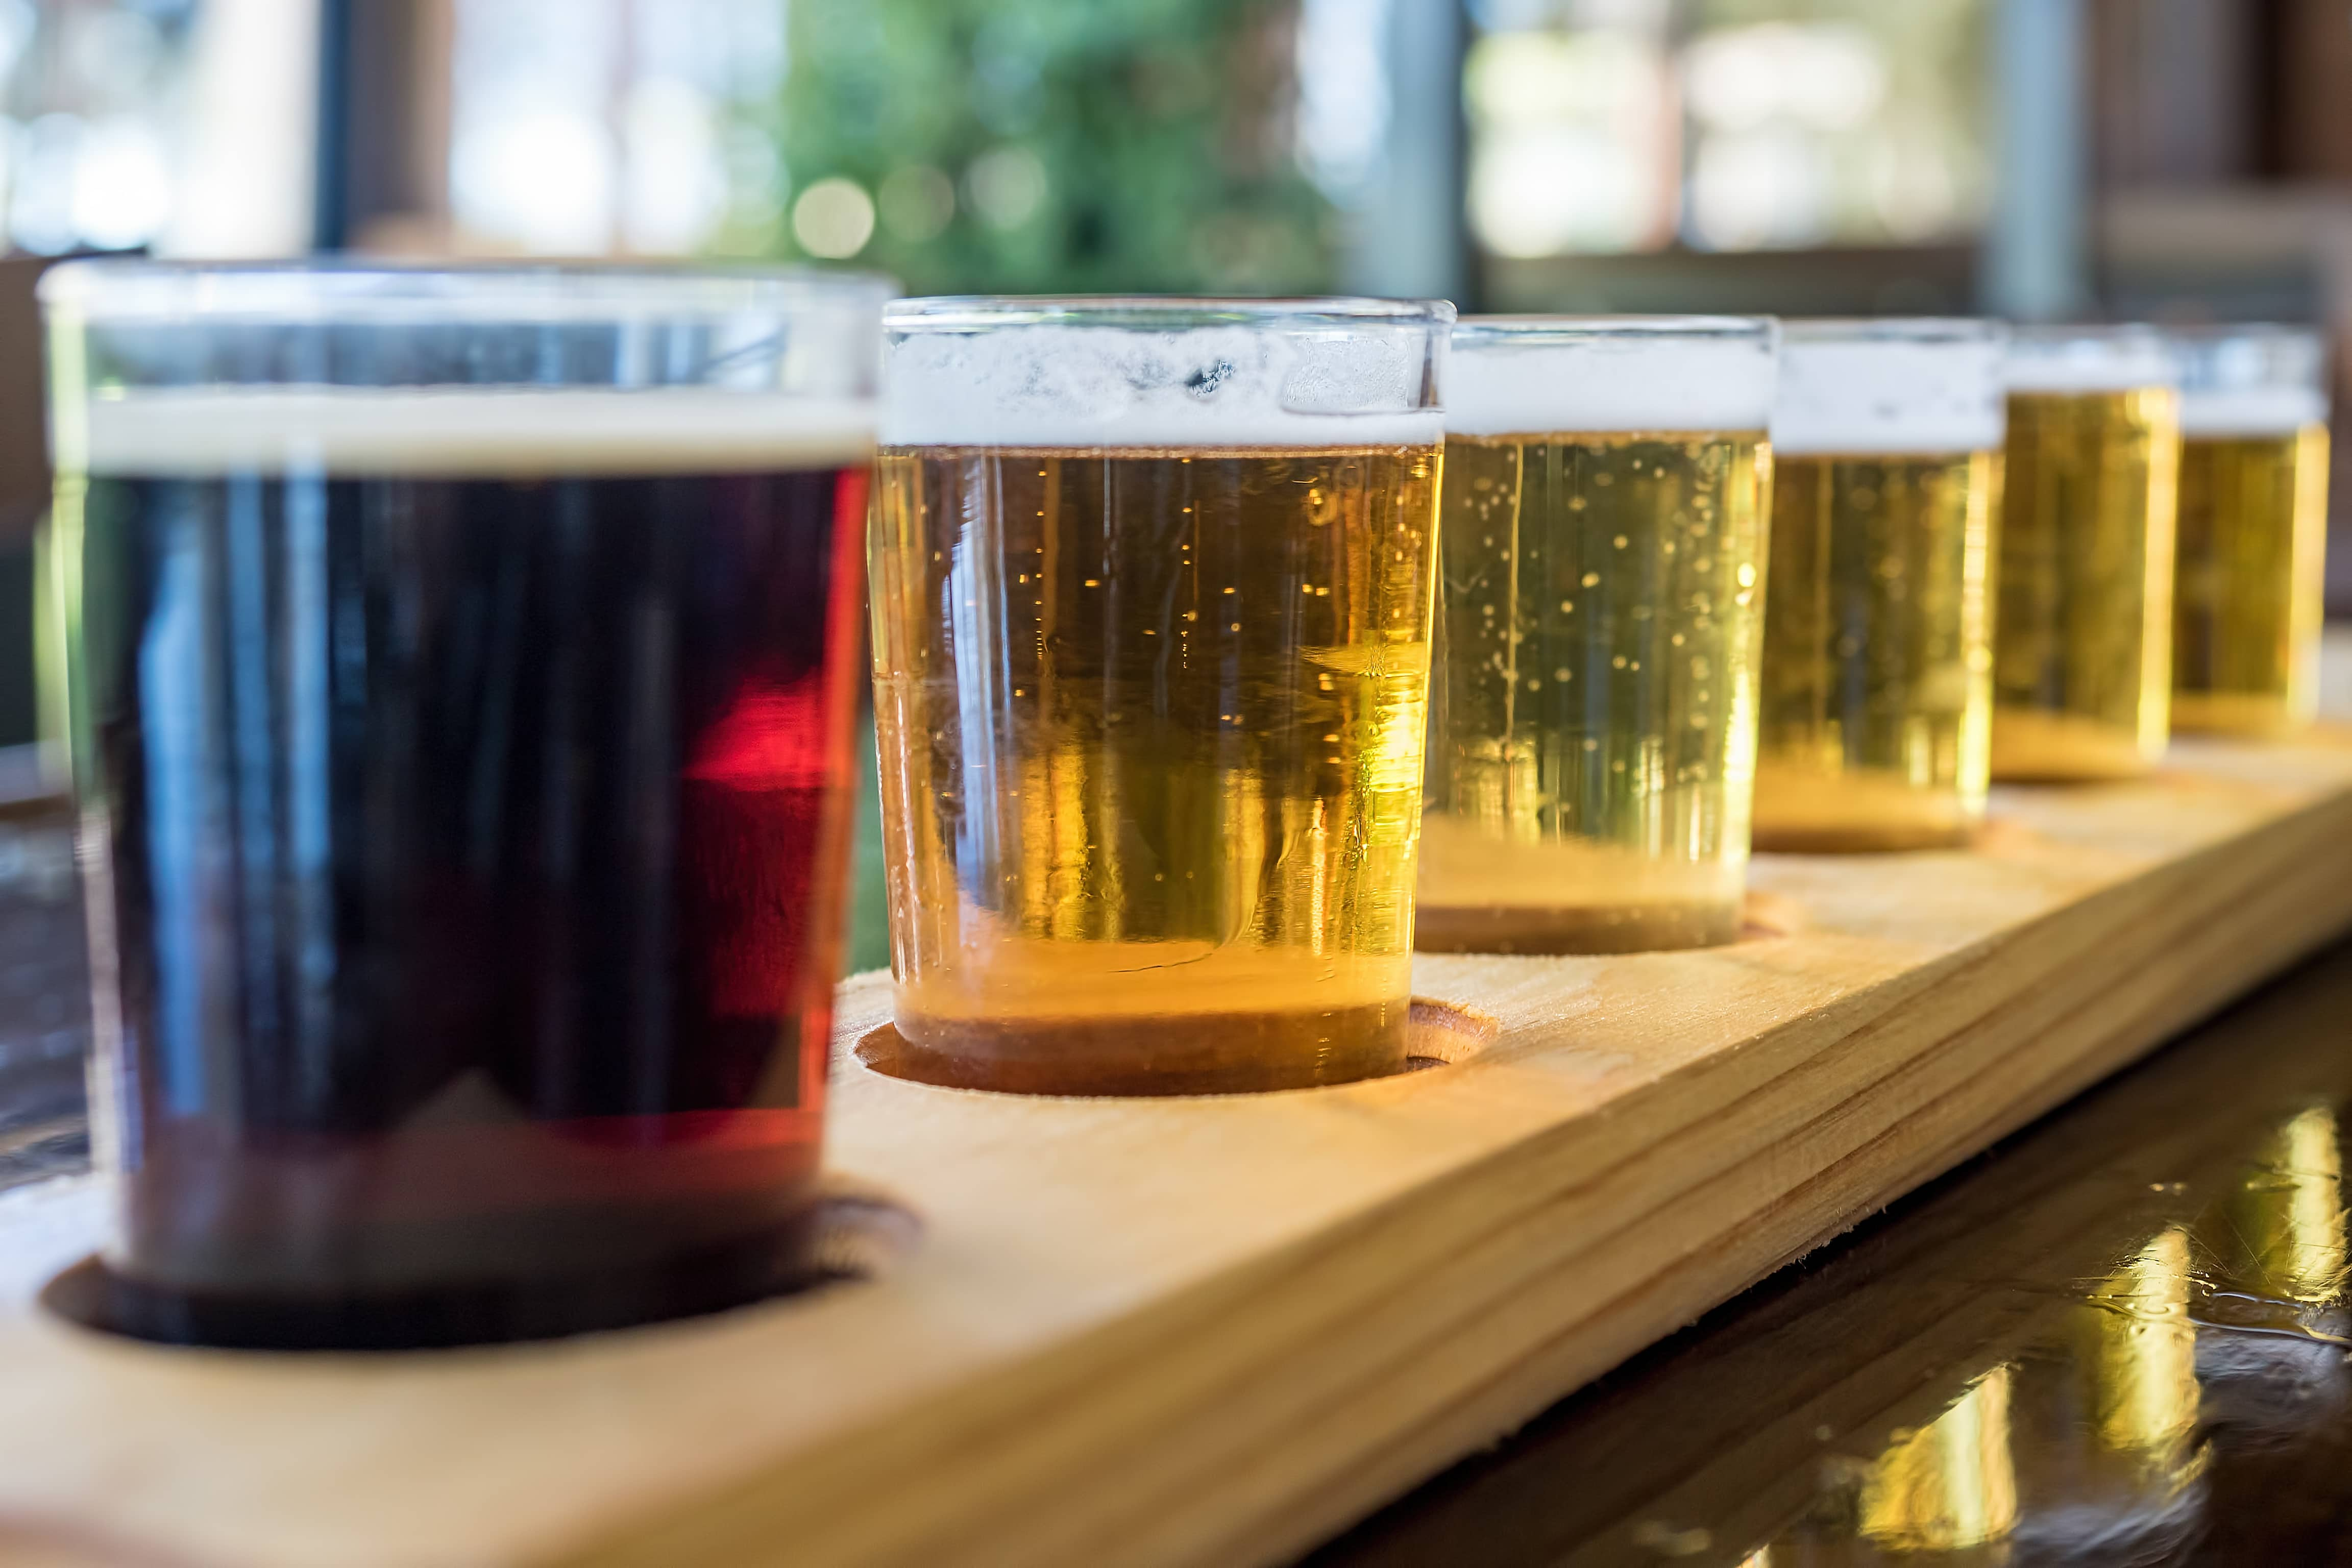 Beer samplers in unique wooden tray